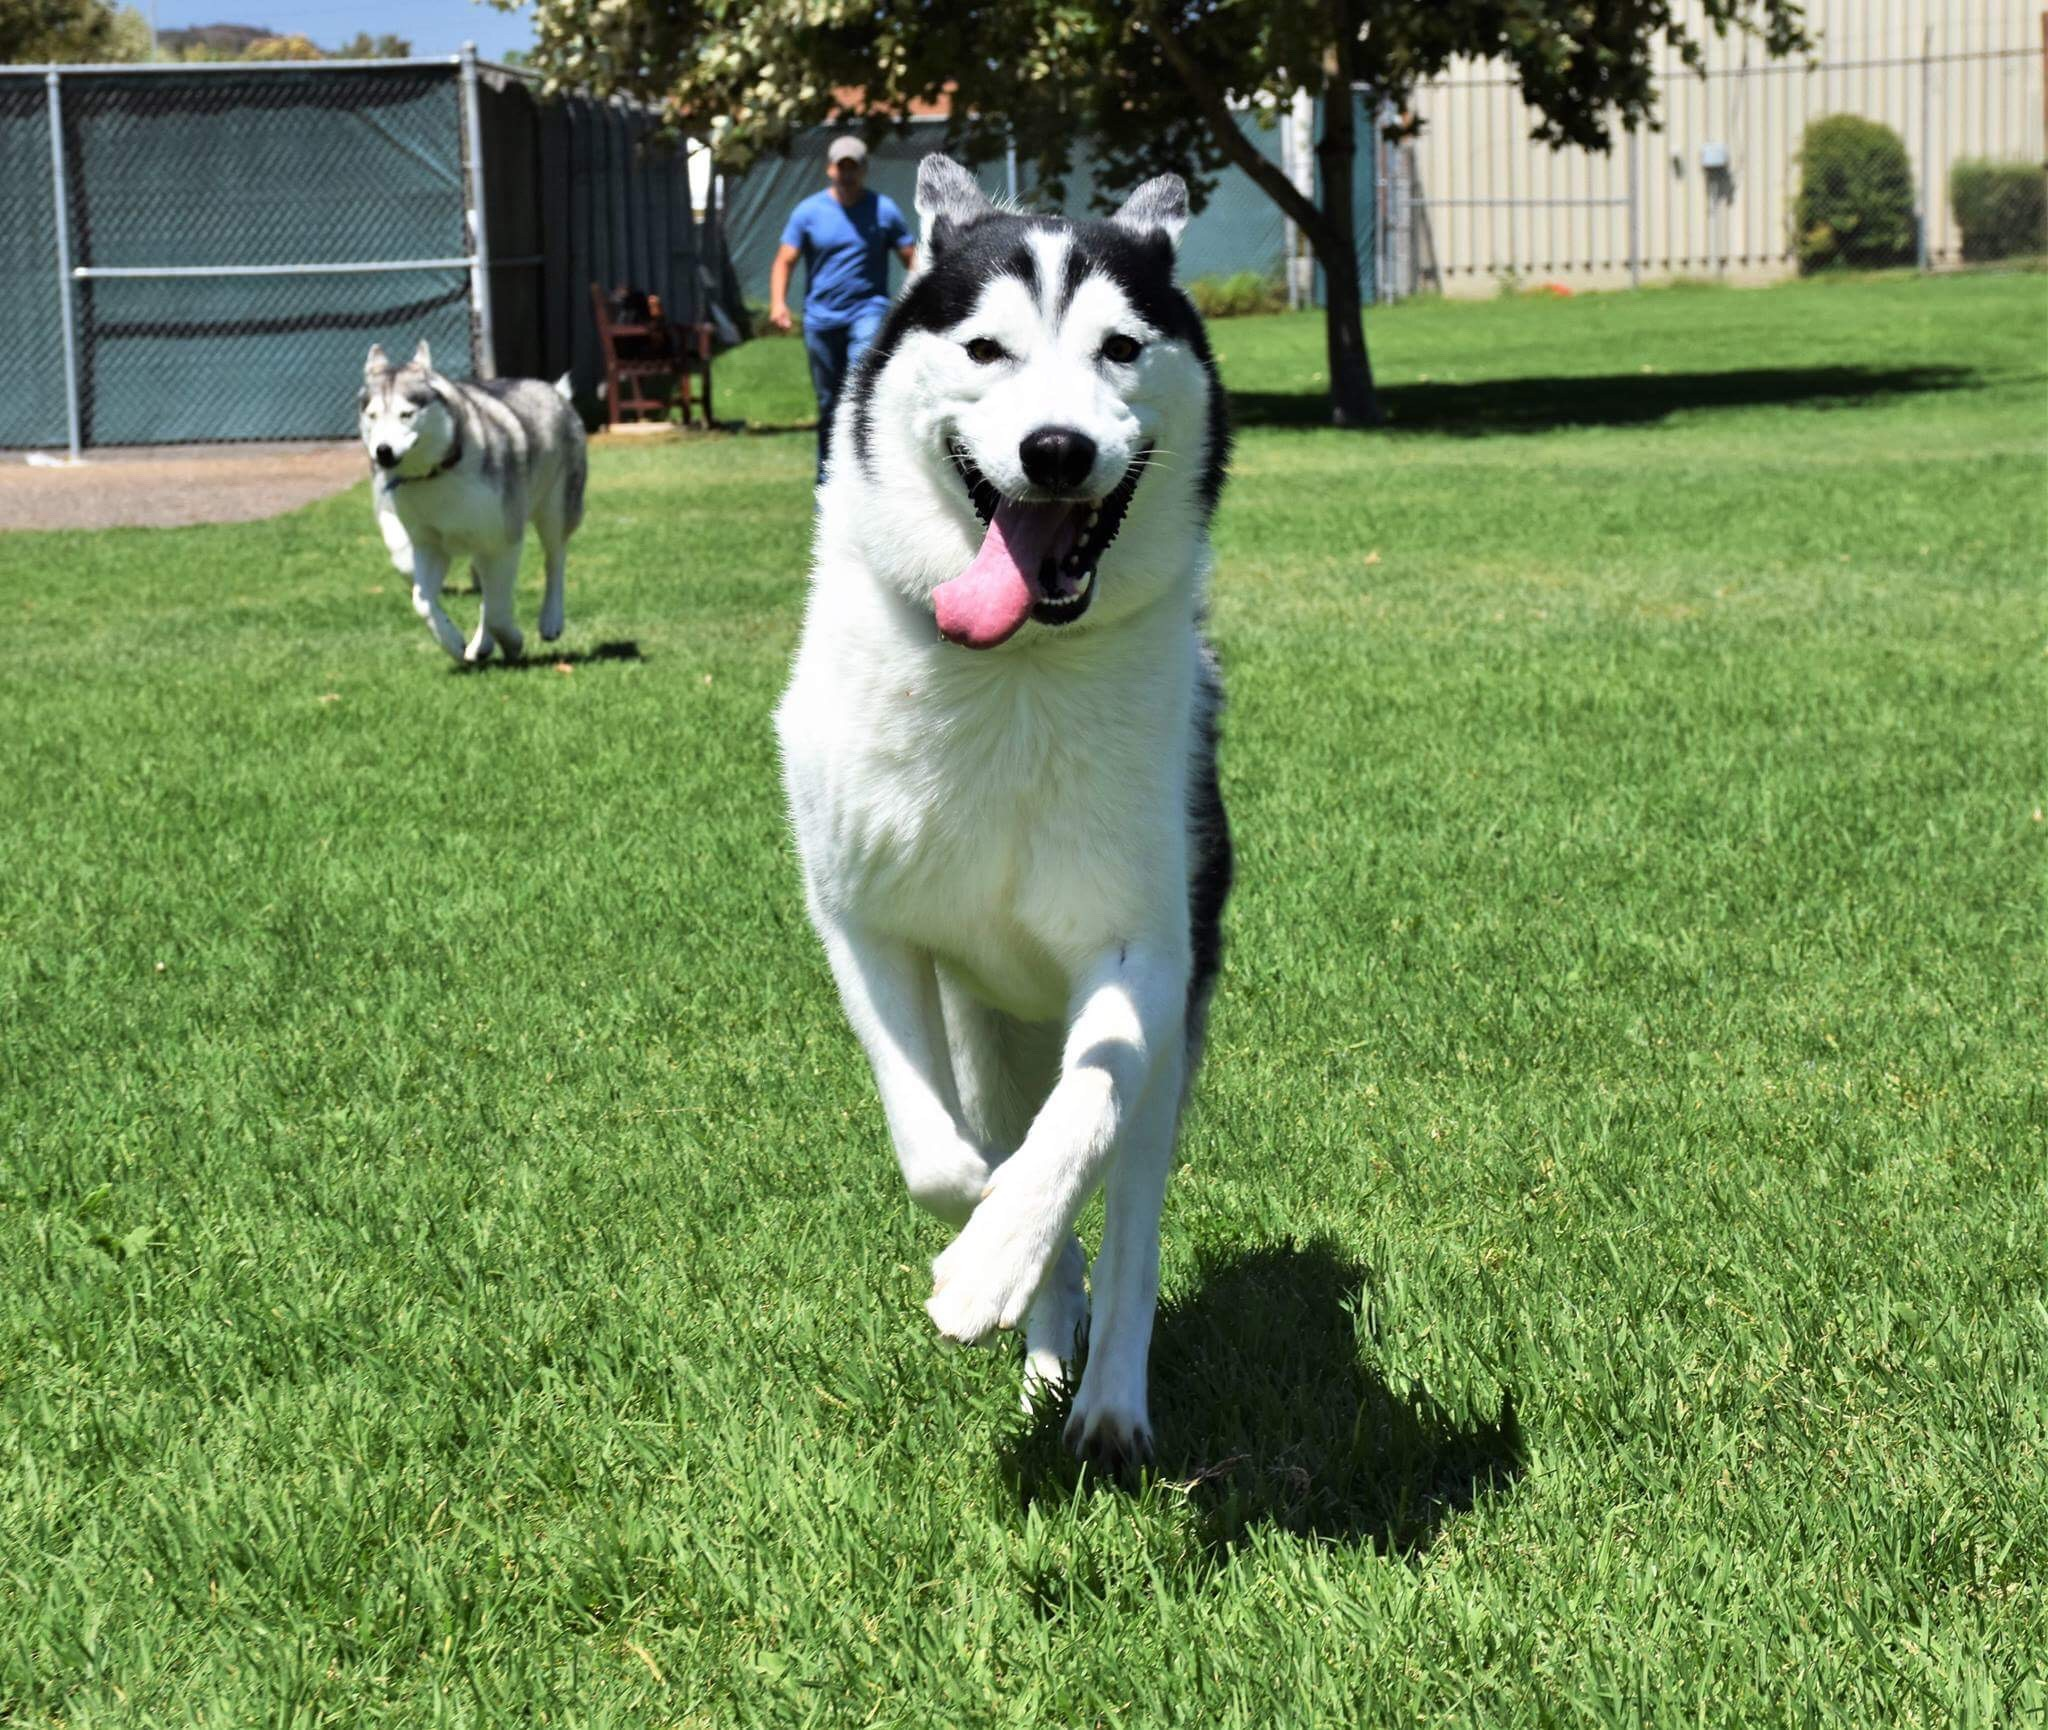 Husky puppies for sale yucca valley - Husky Puppies For Sale Yucca Valley 18